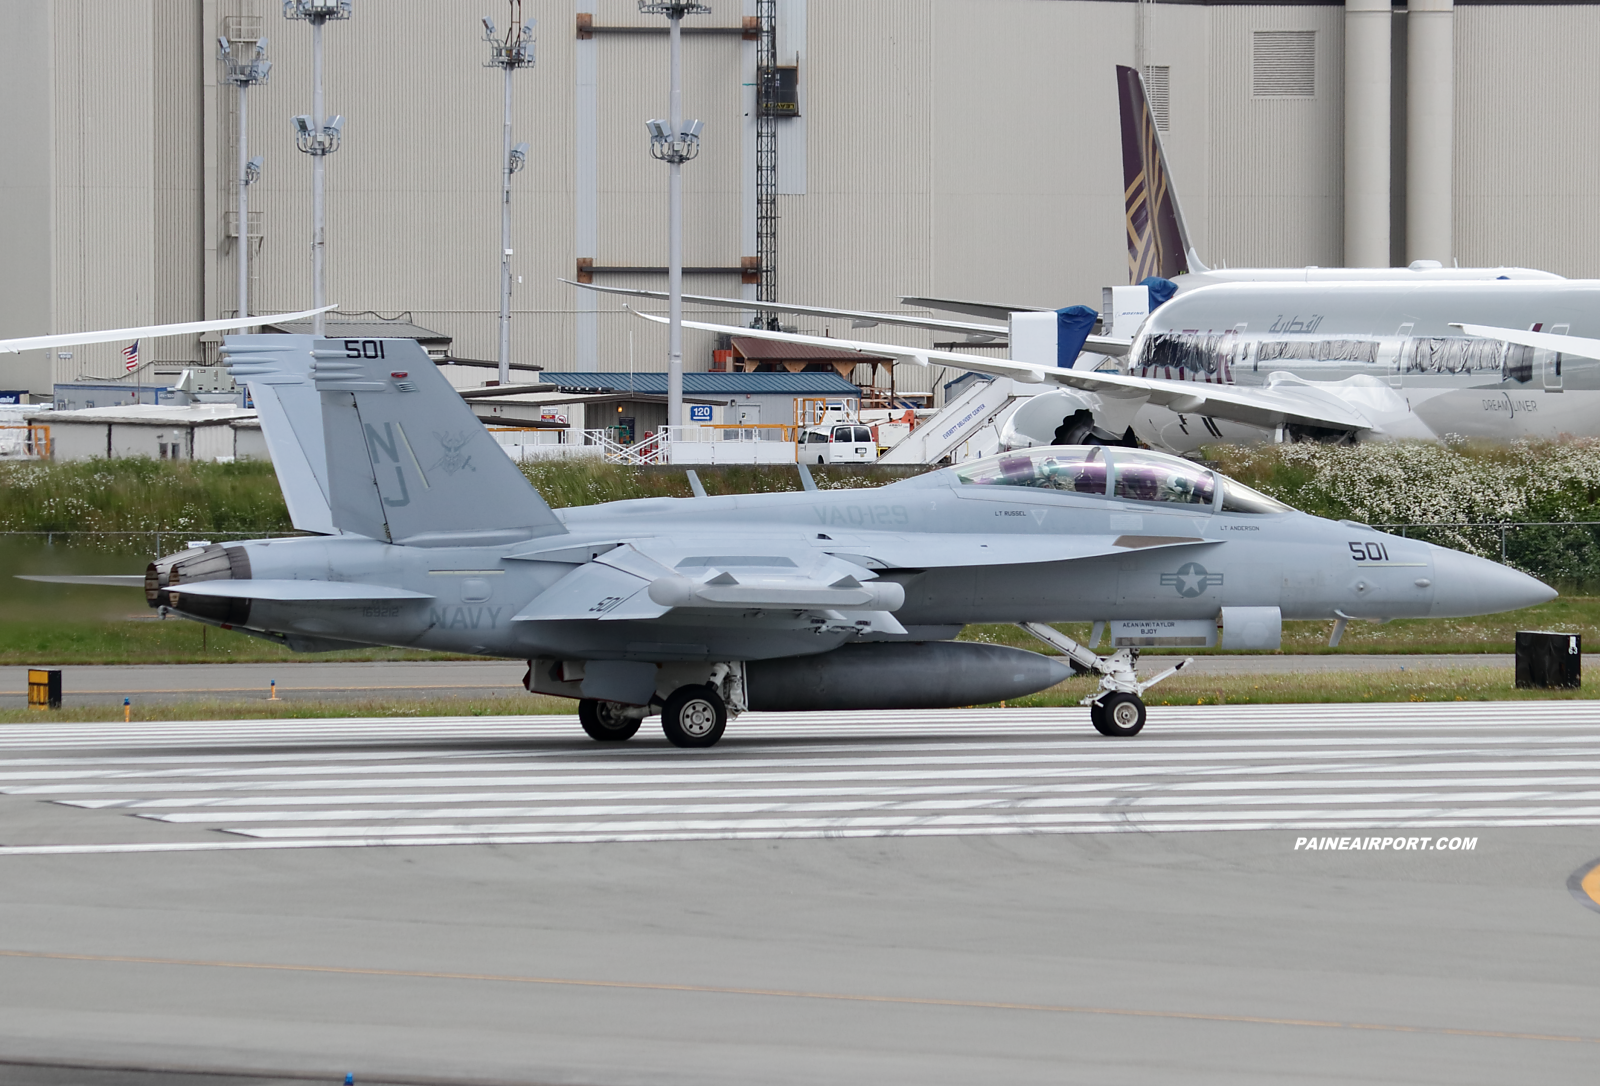 EA-18G 169212 at KPAE Paine Field